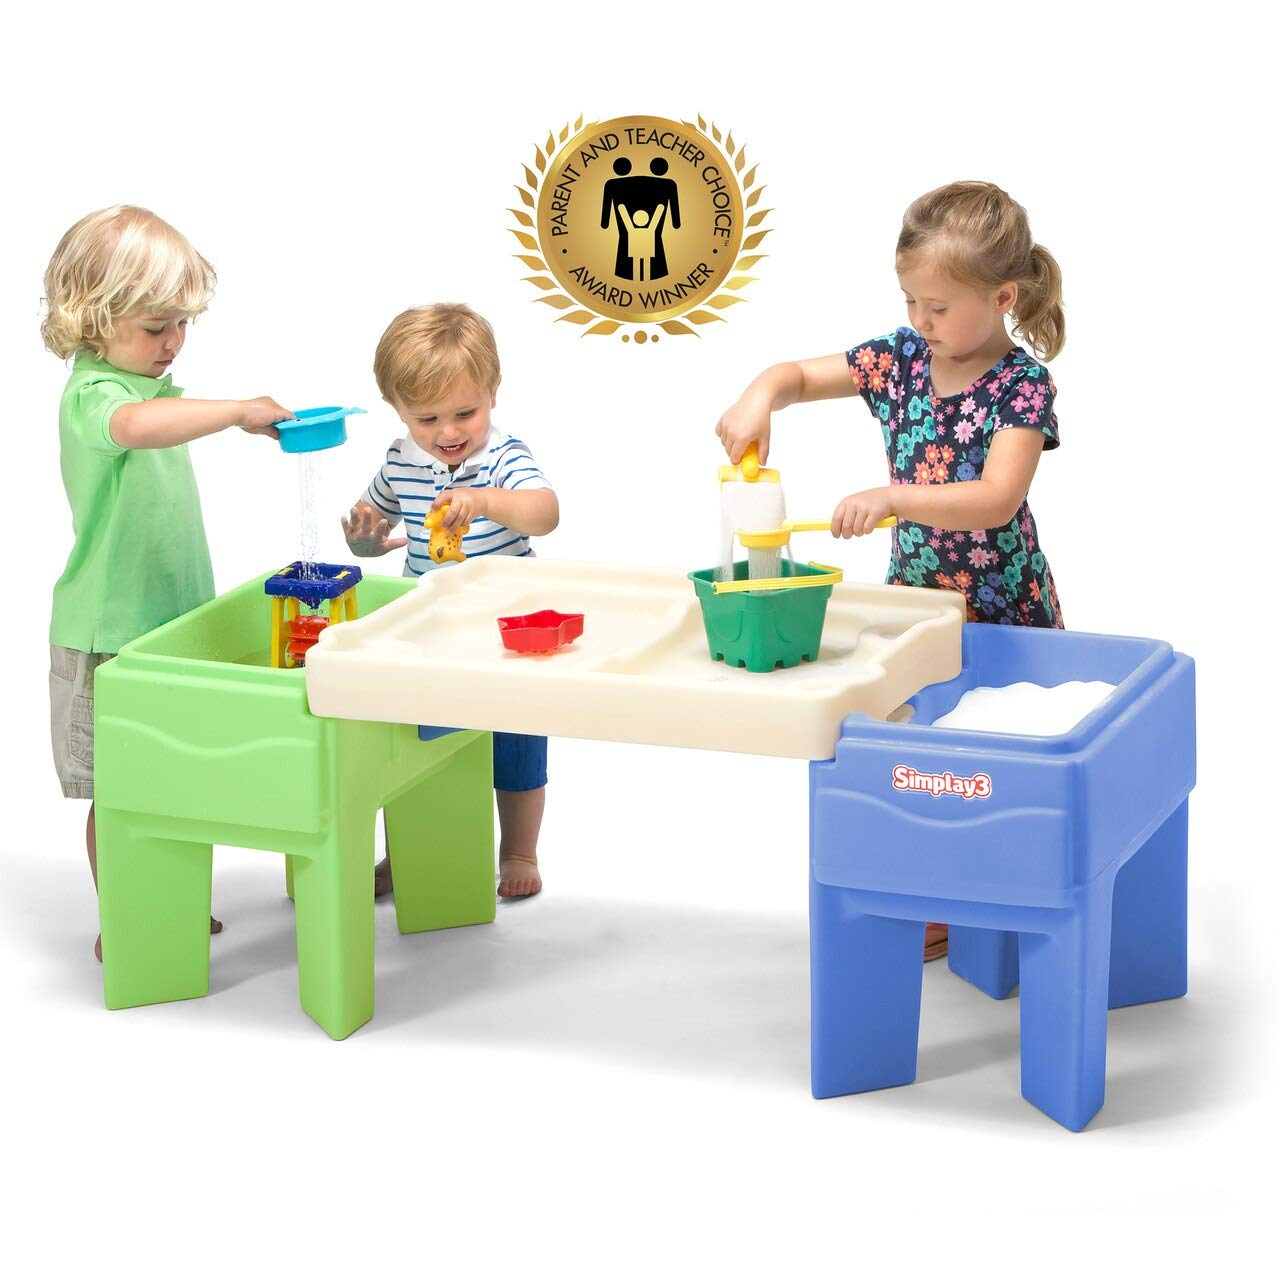 Simplay3 Kids Indoor Outdoor Sand and Water Activity Table with Storage by Simplay3